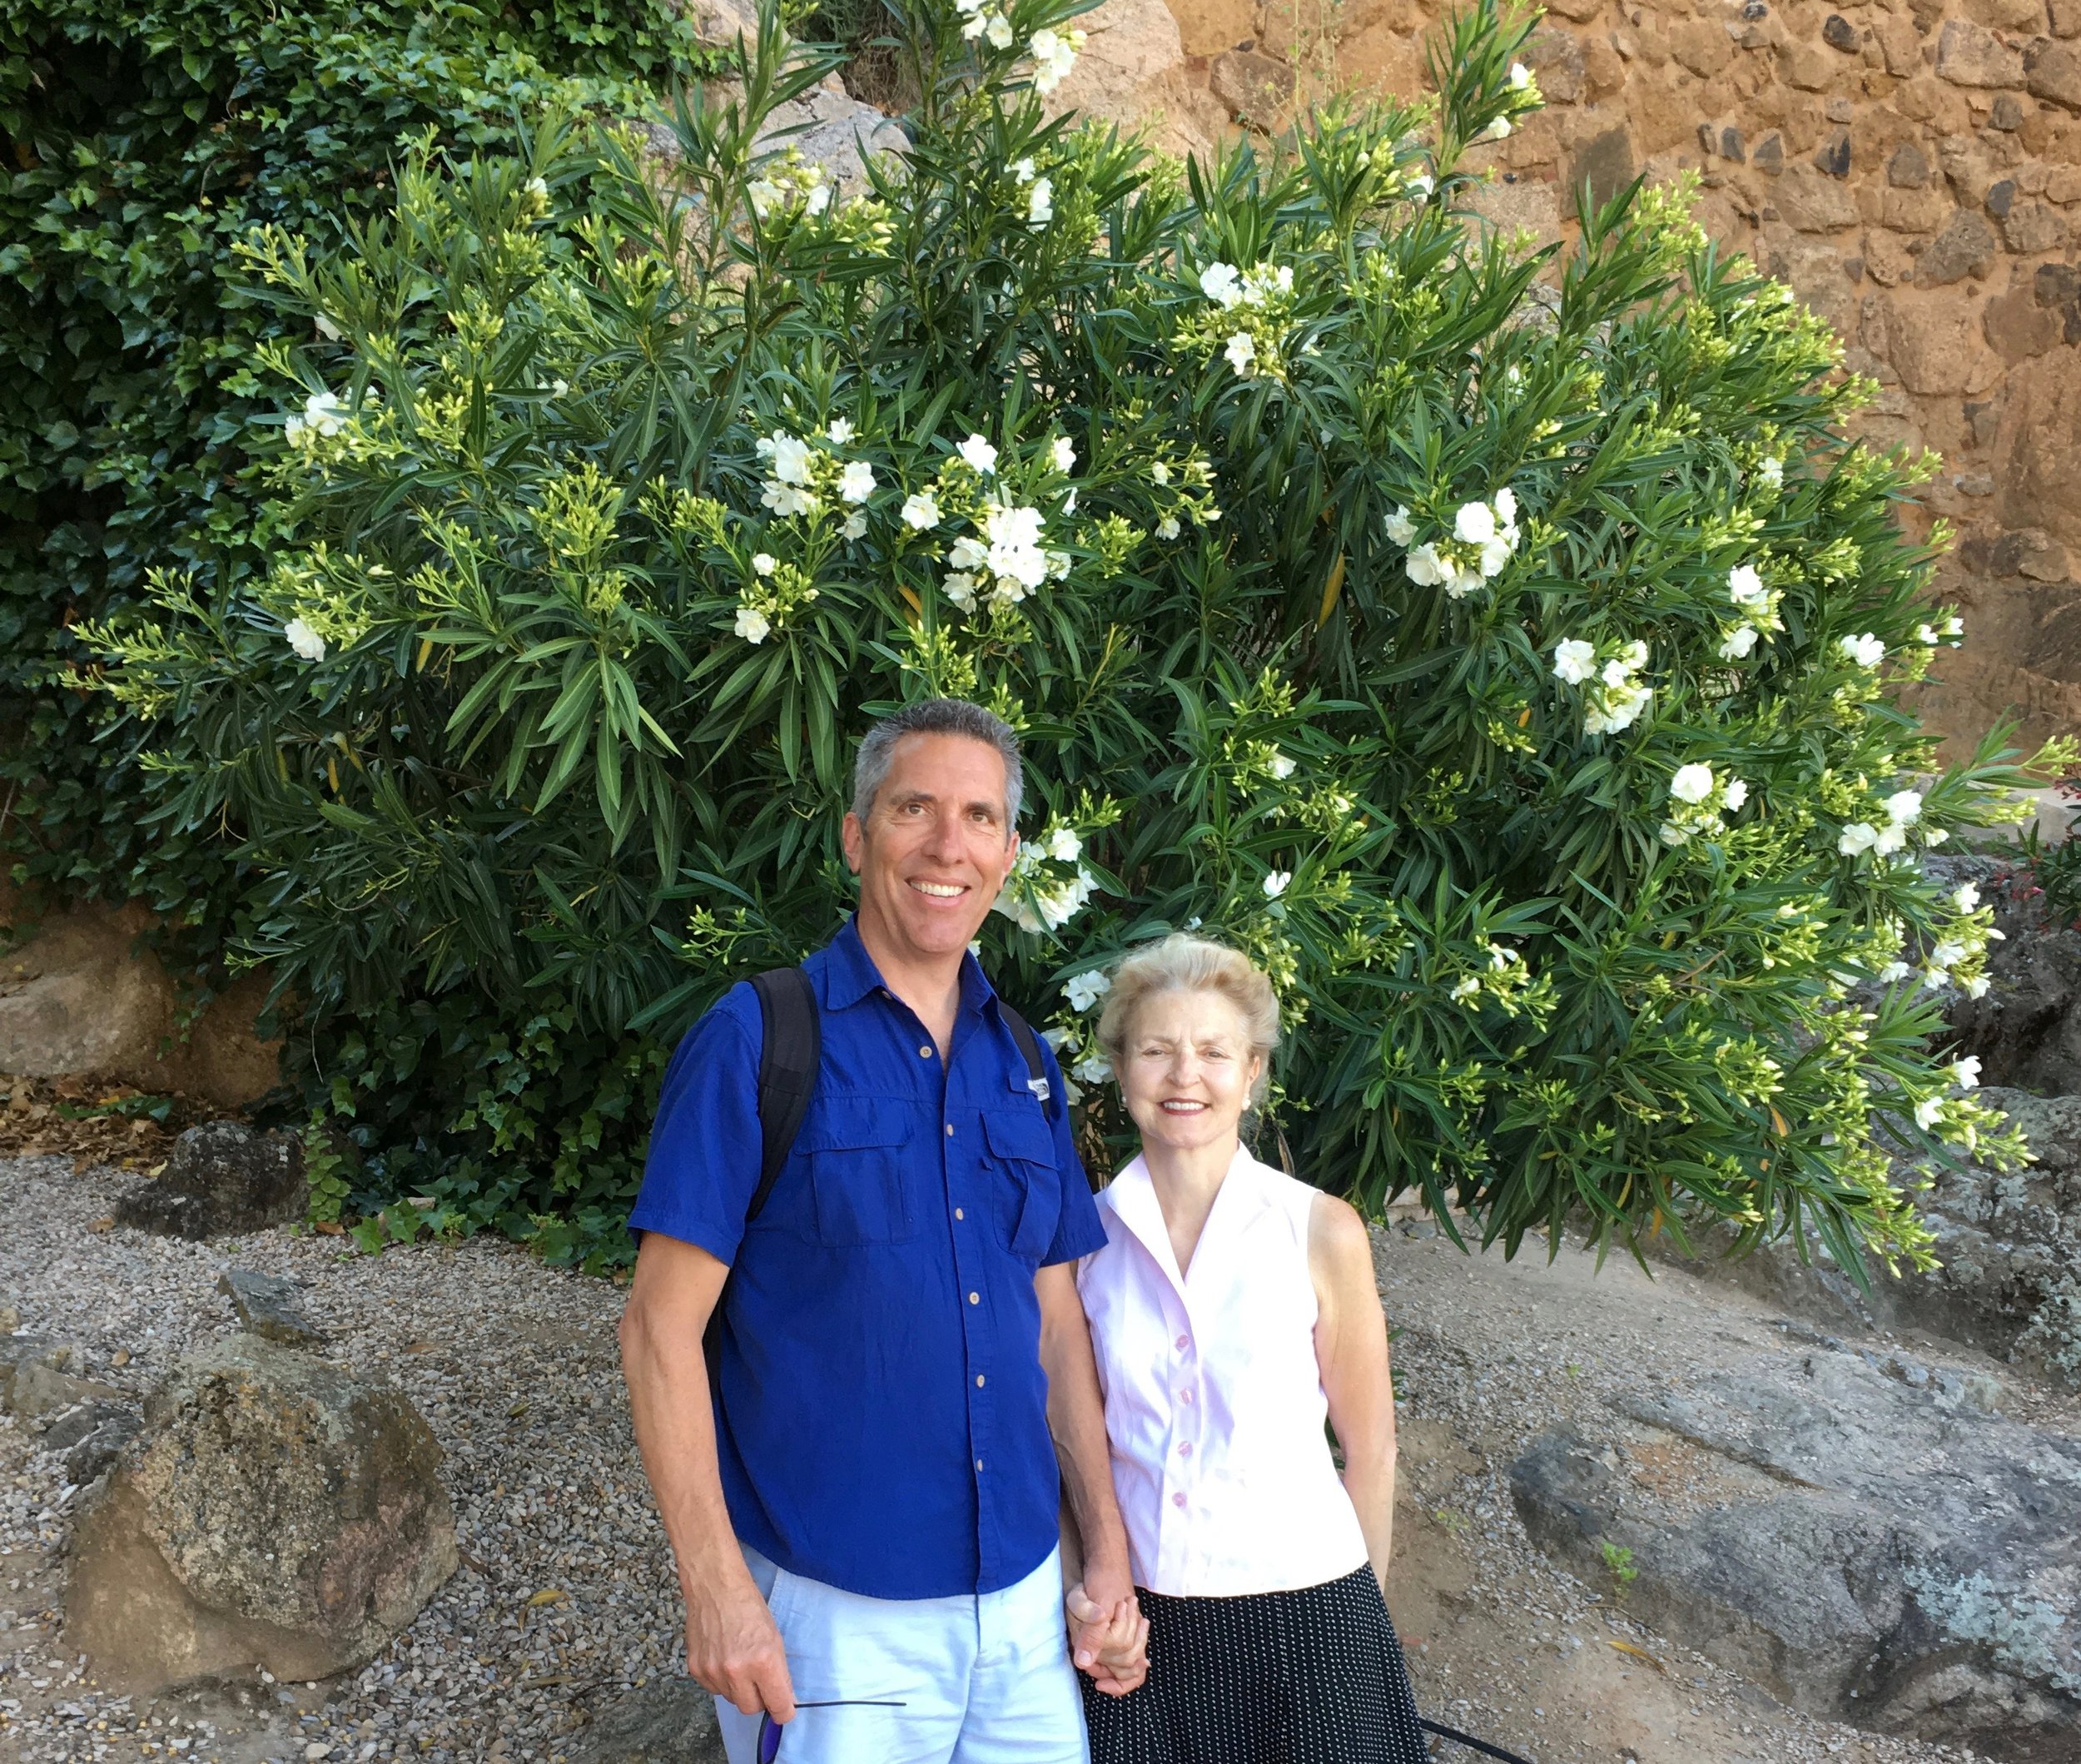 Hi! We're Arlette and Steve, owners of Adventures to Europe and your expert guides.